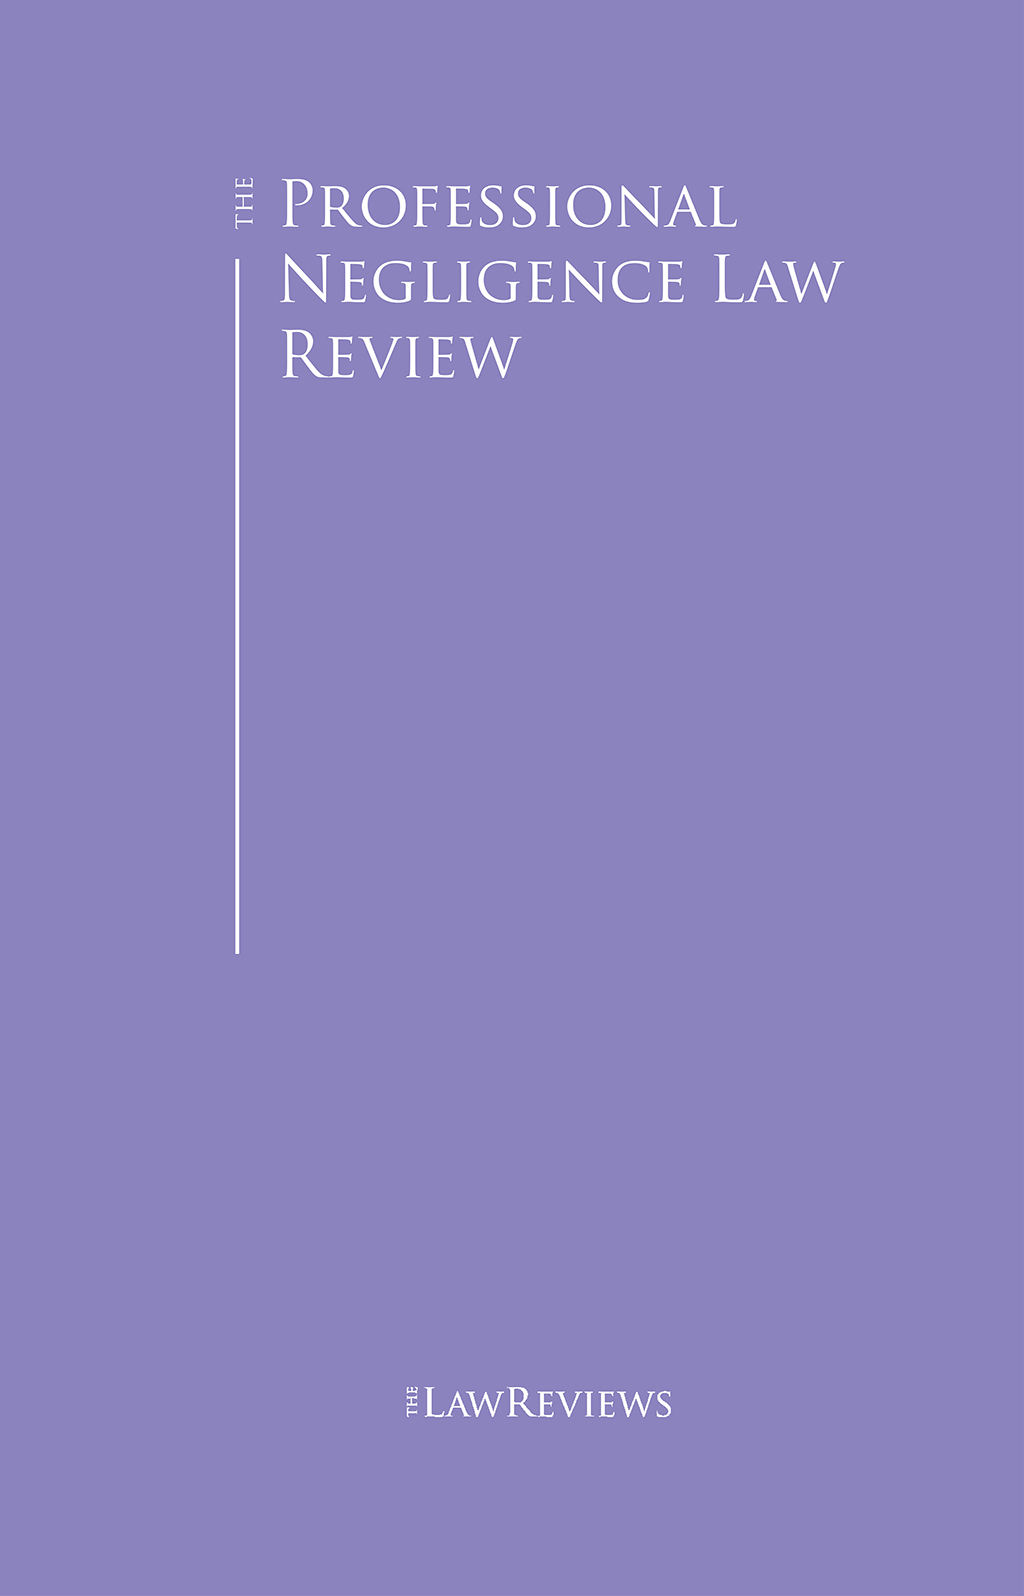 The Professional Negligence Law Review